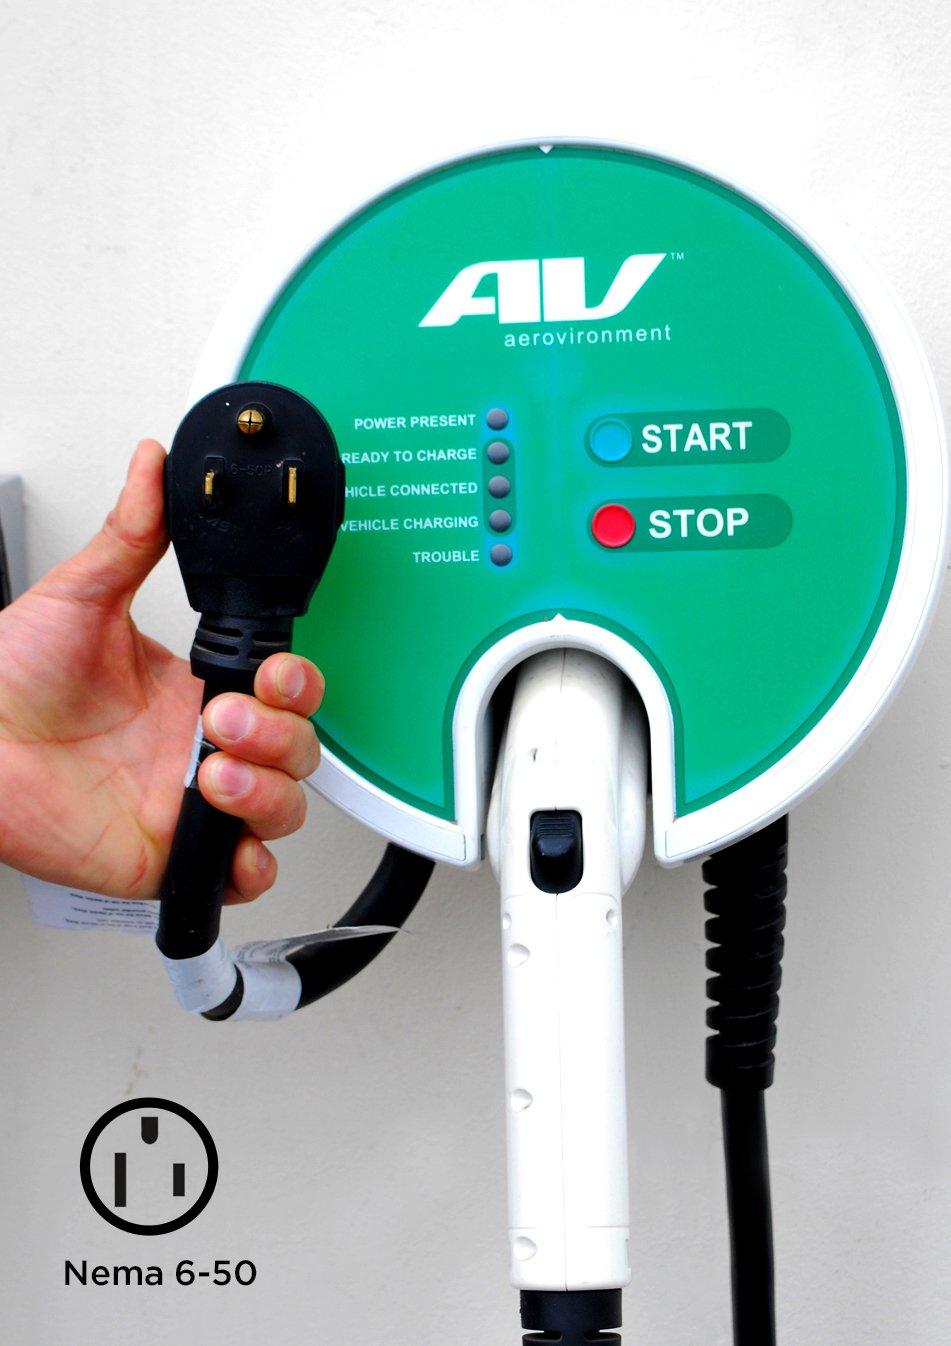 AeroVironment EV Charger: Plug-In, 25' cable, 32A, 7.7kW - SPECIAL PRICE PROMOTION! by AeroVironment (Image #3)